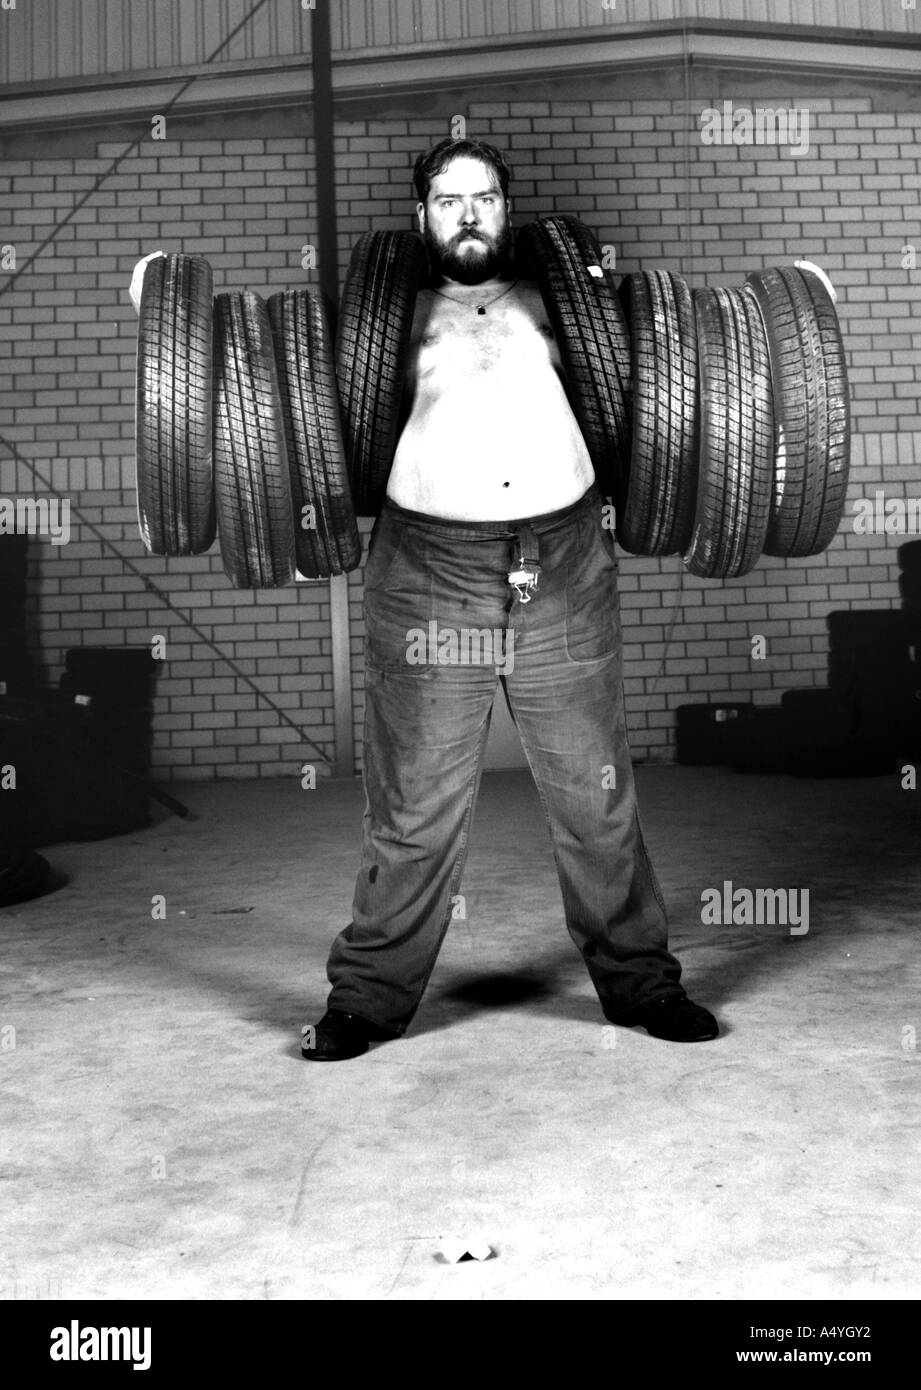 Man carrying 8 tyres - Stock Image